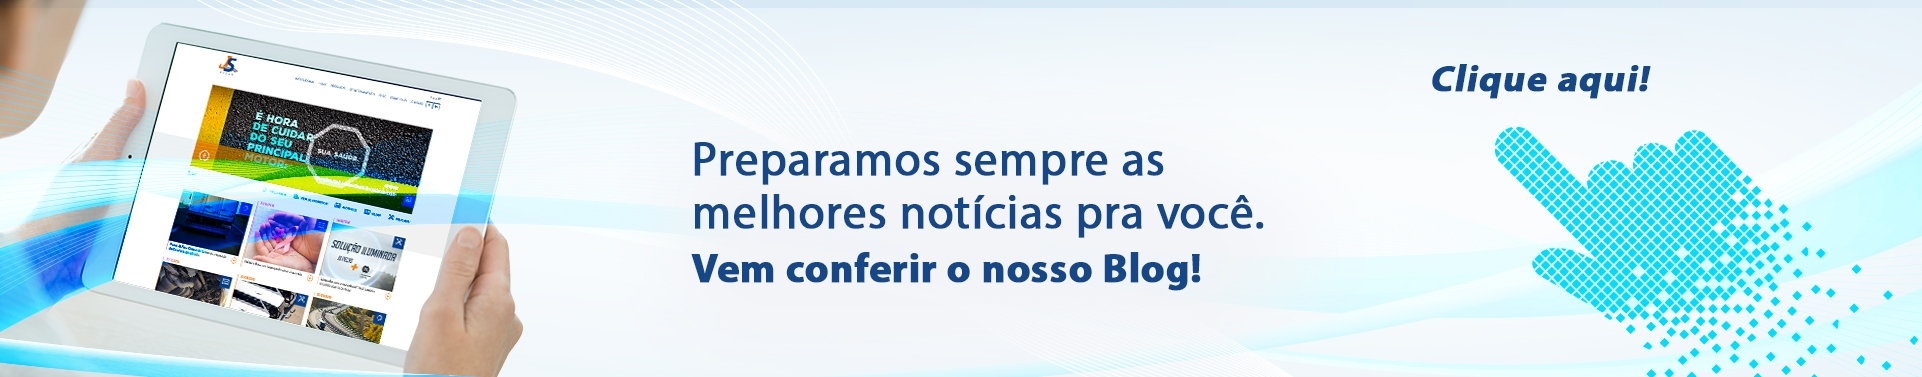 Blog do cliente